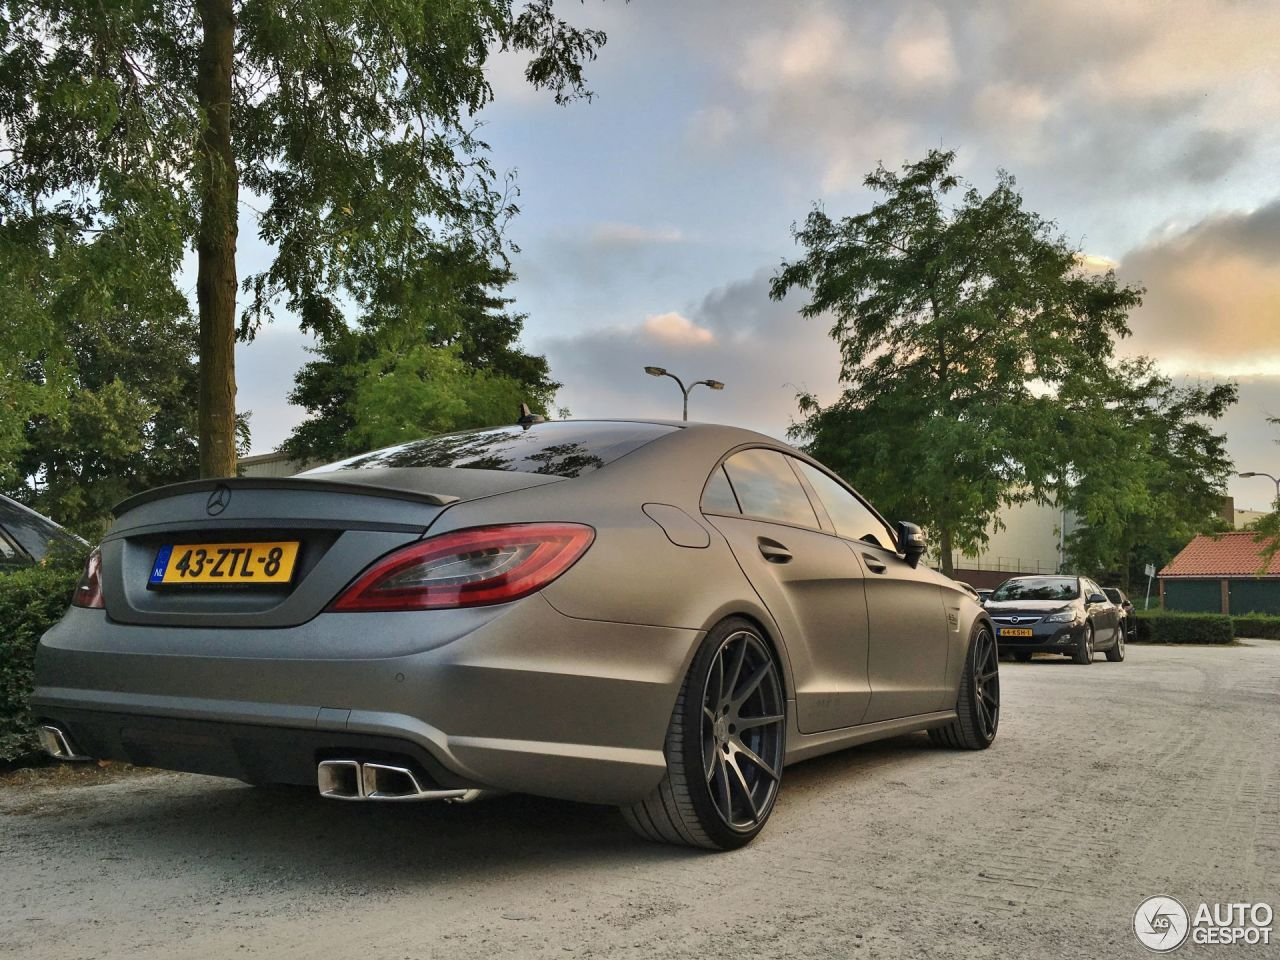 Mercedes benz cls 63 amg c218 24 july 2016 autogespot for Mercedes benz cls 63 amg price